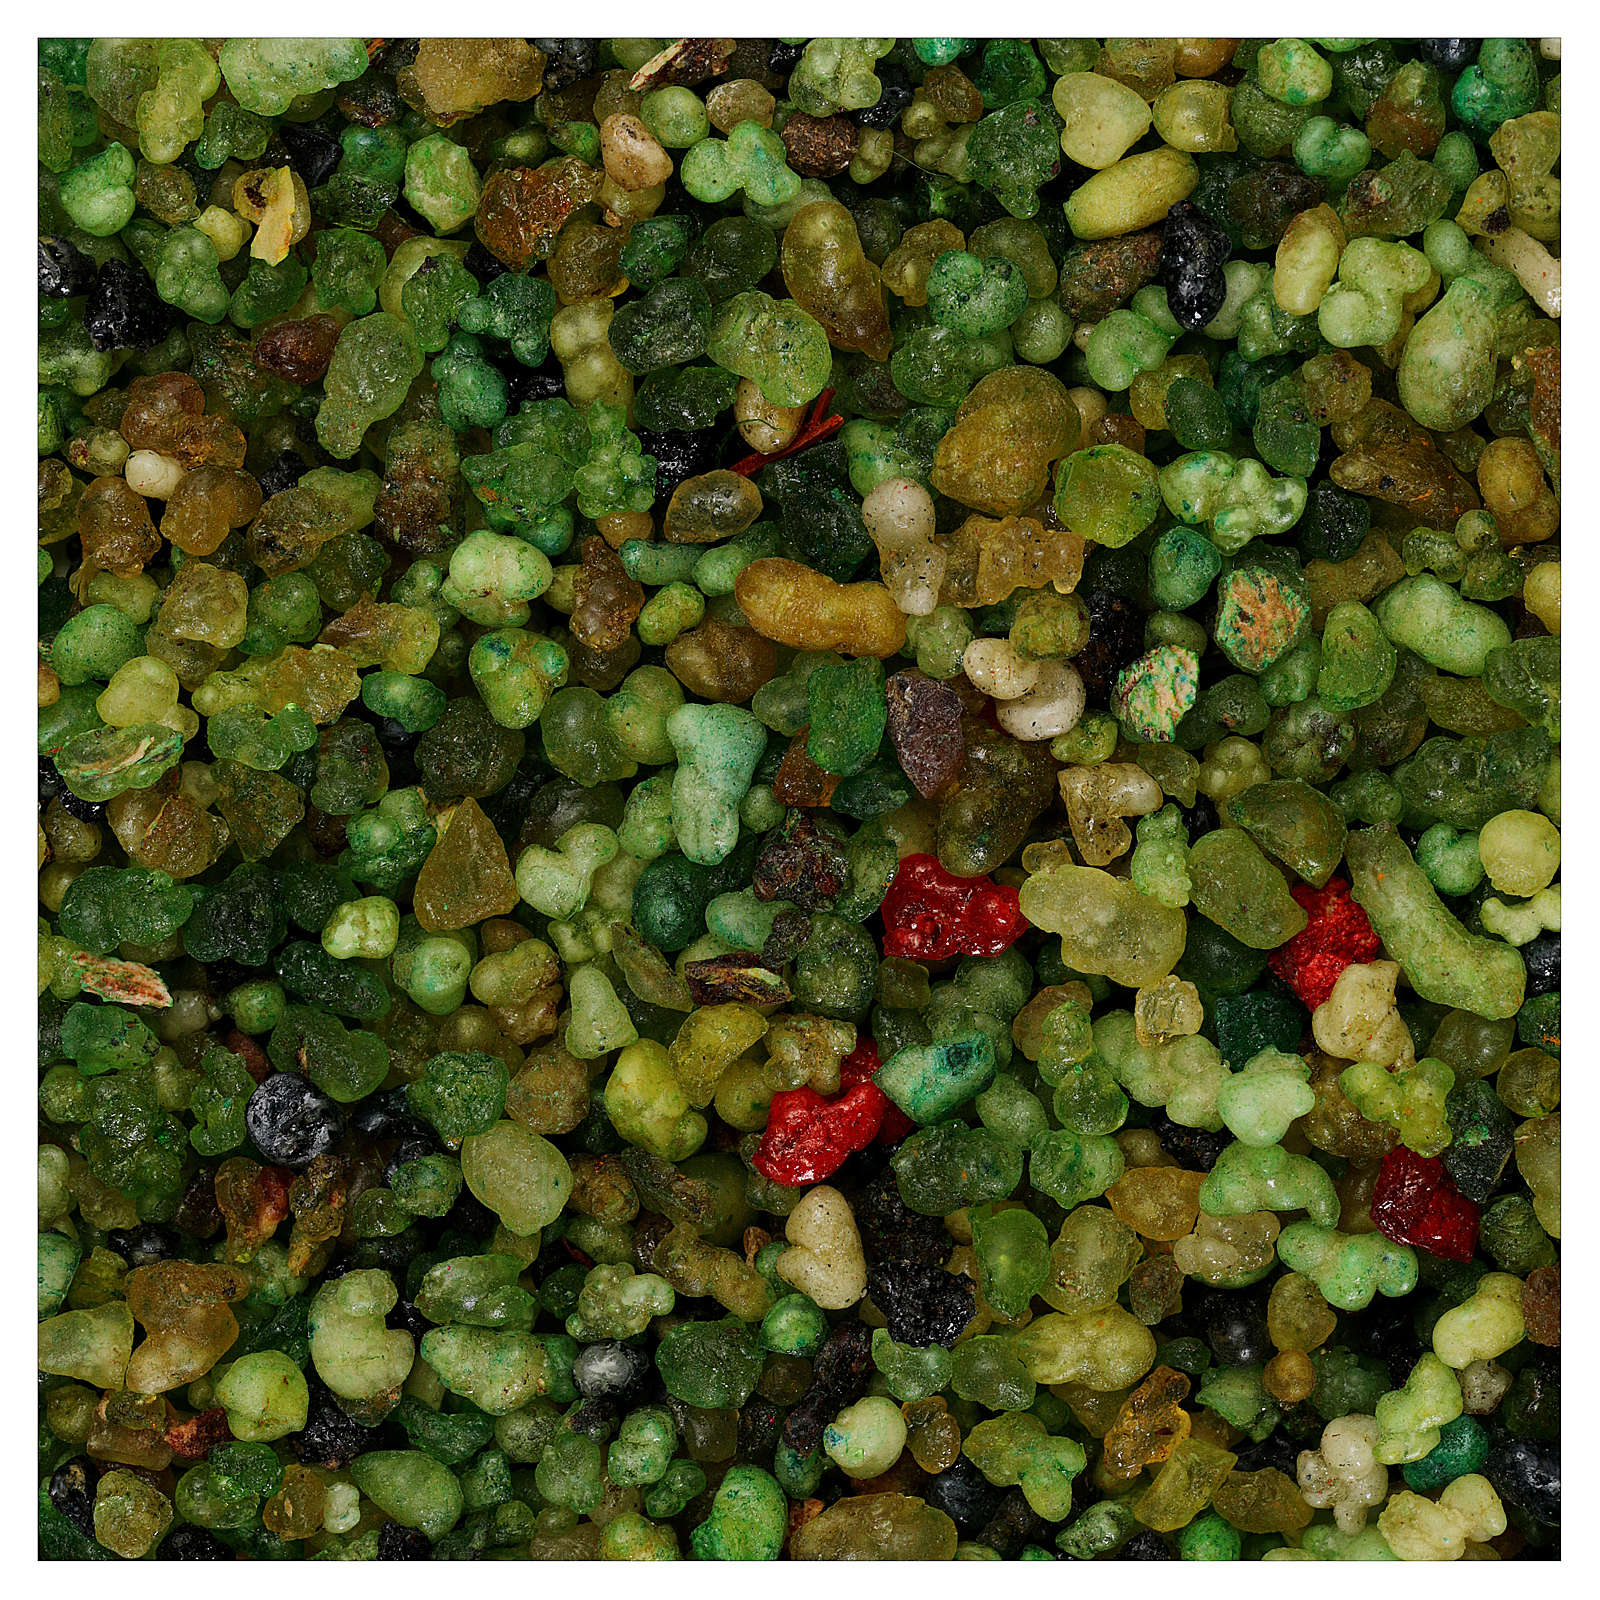 Scented incense 1 kg, small green grains 3